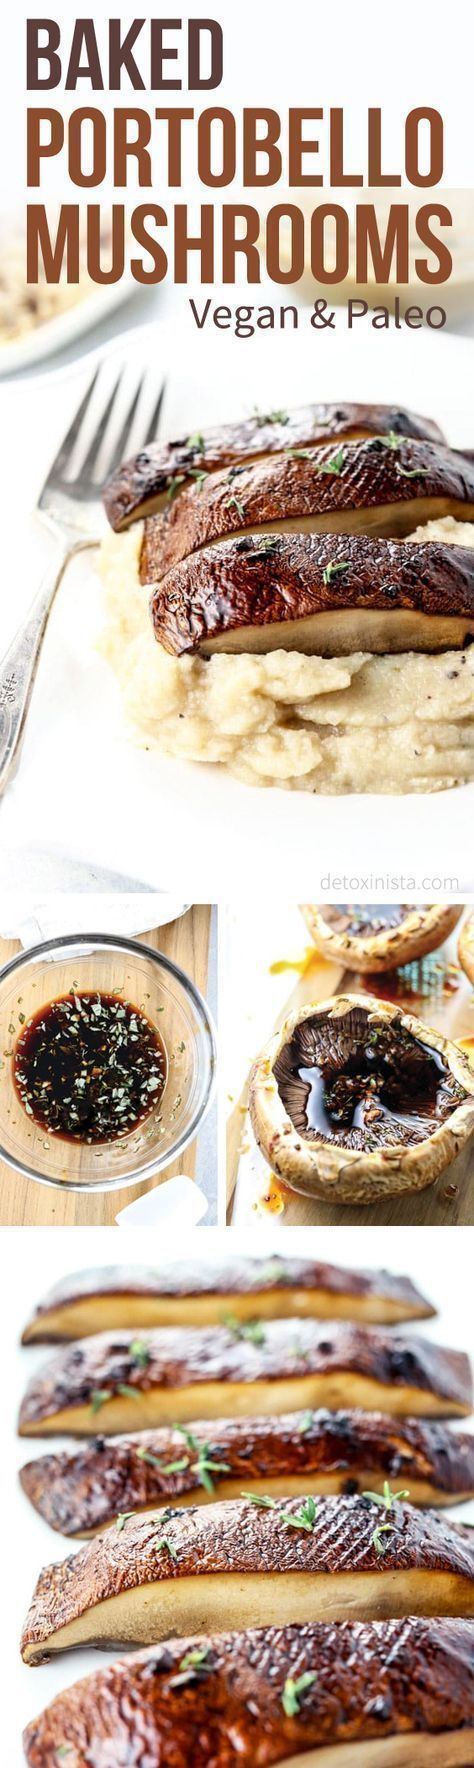 """Baked Portobello Mushrooms make a healthy vegetarian or vegan meat substitute. Serve them as a """"steak"""" over mashed potatoes with gravy for a holiday meal, or even as a burger with your favorite toppings! Gluten-free, Dairy-free, and Oil-Free, without using processed soy substitutes. #vegetariandinnerrecipesvegan"""